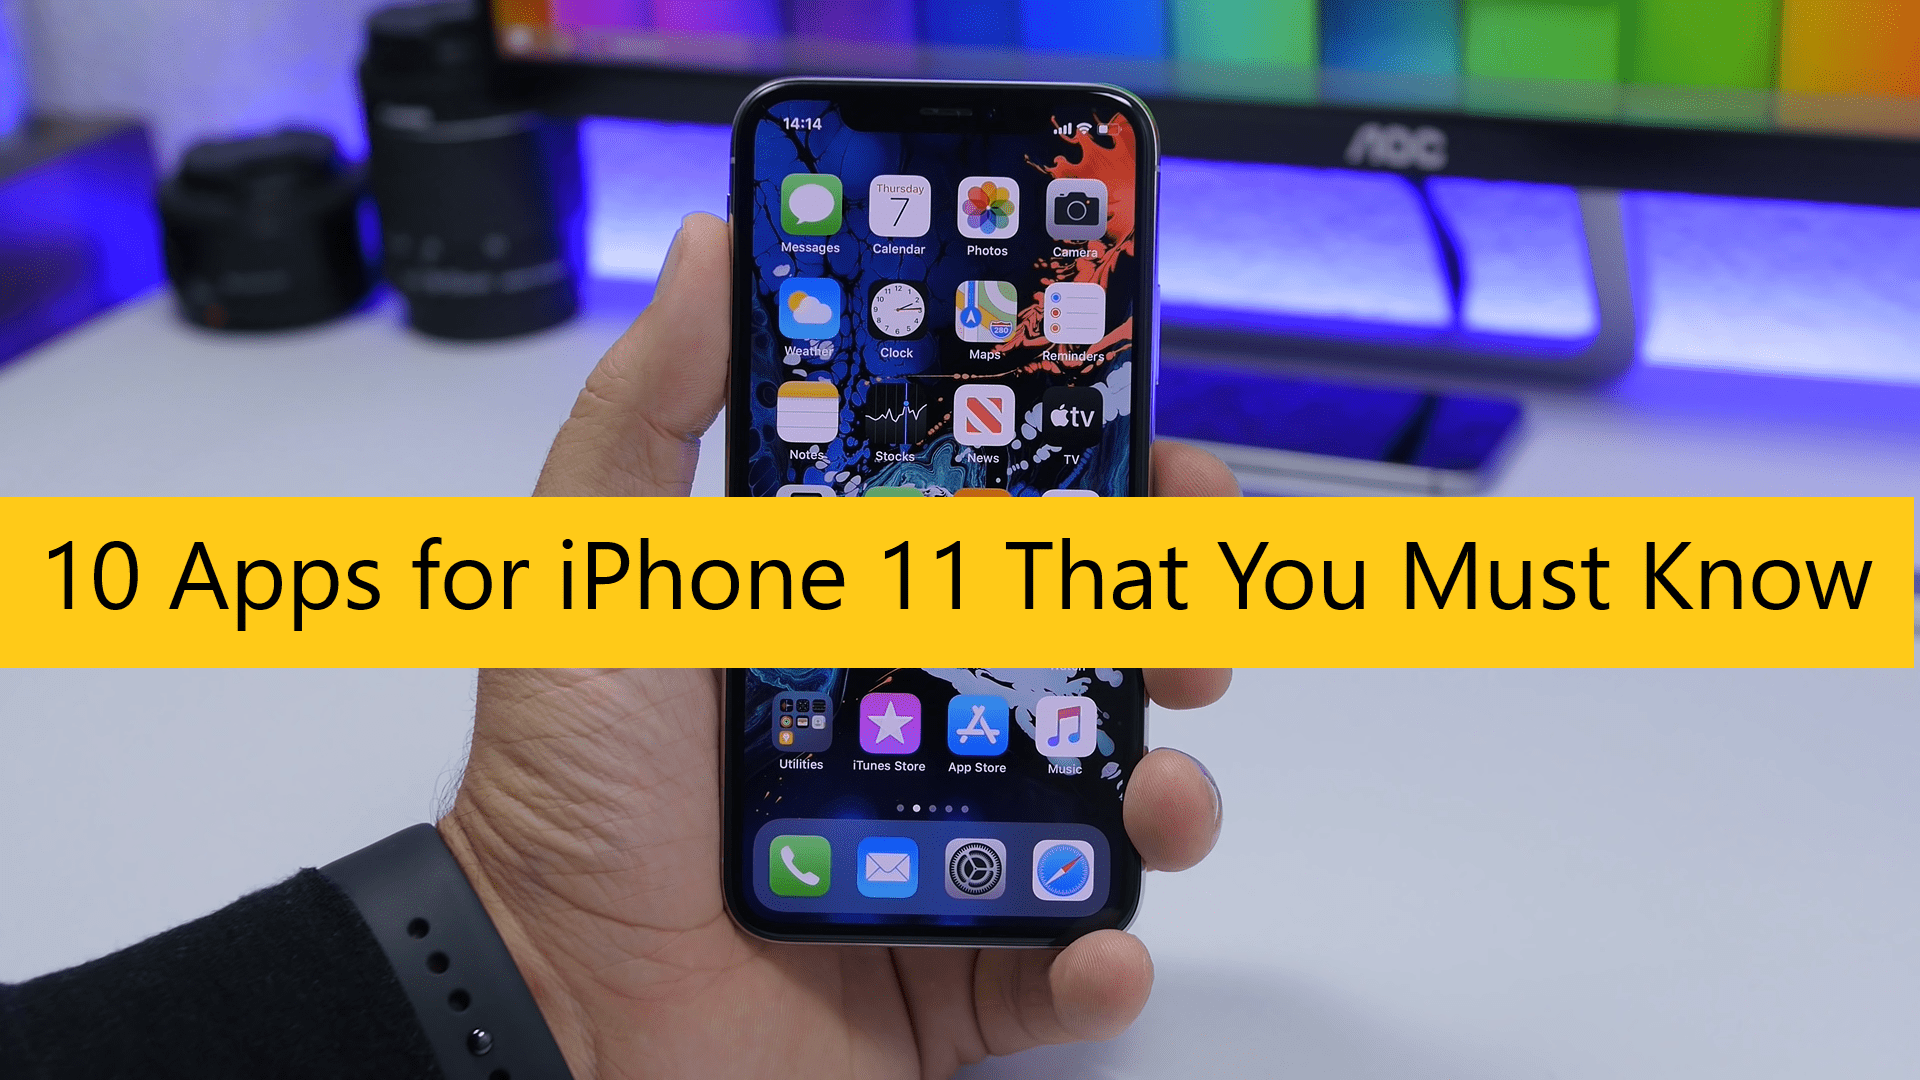 iPhone 11 apps